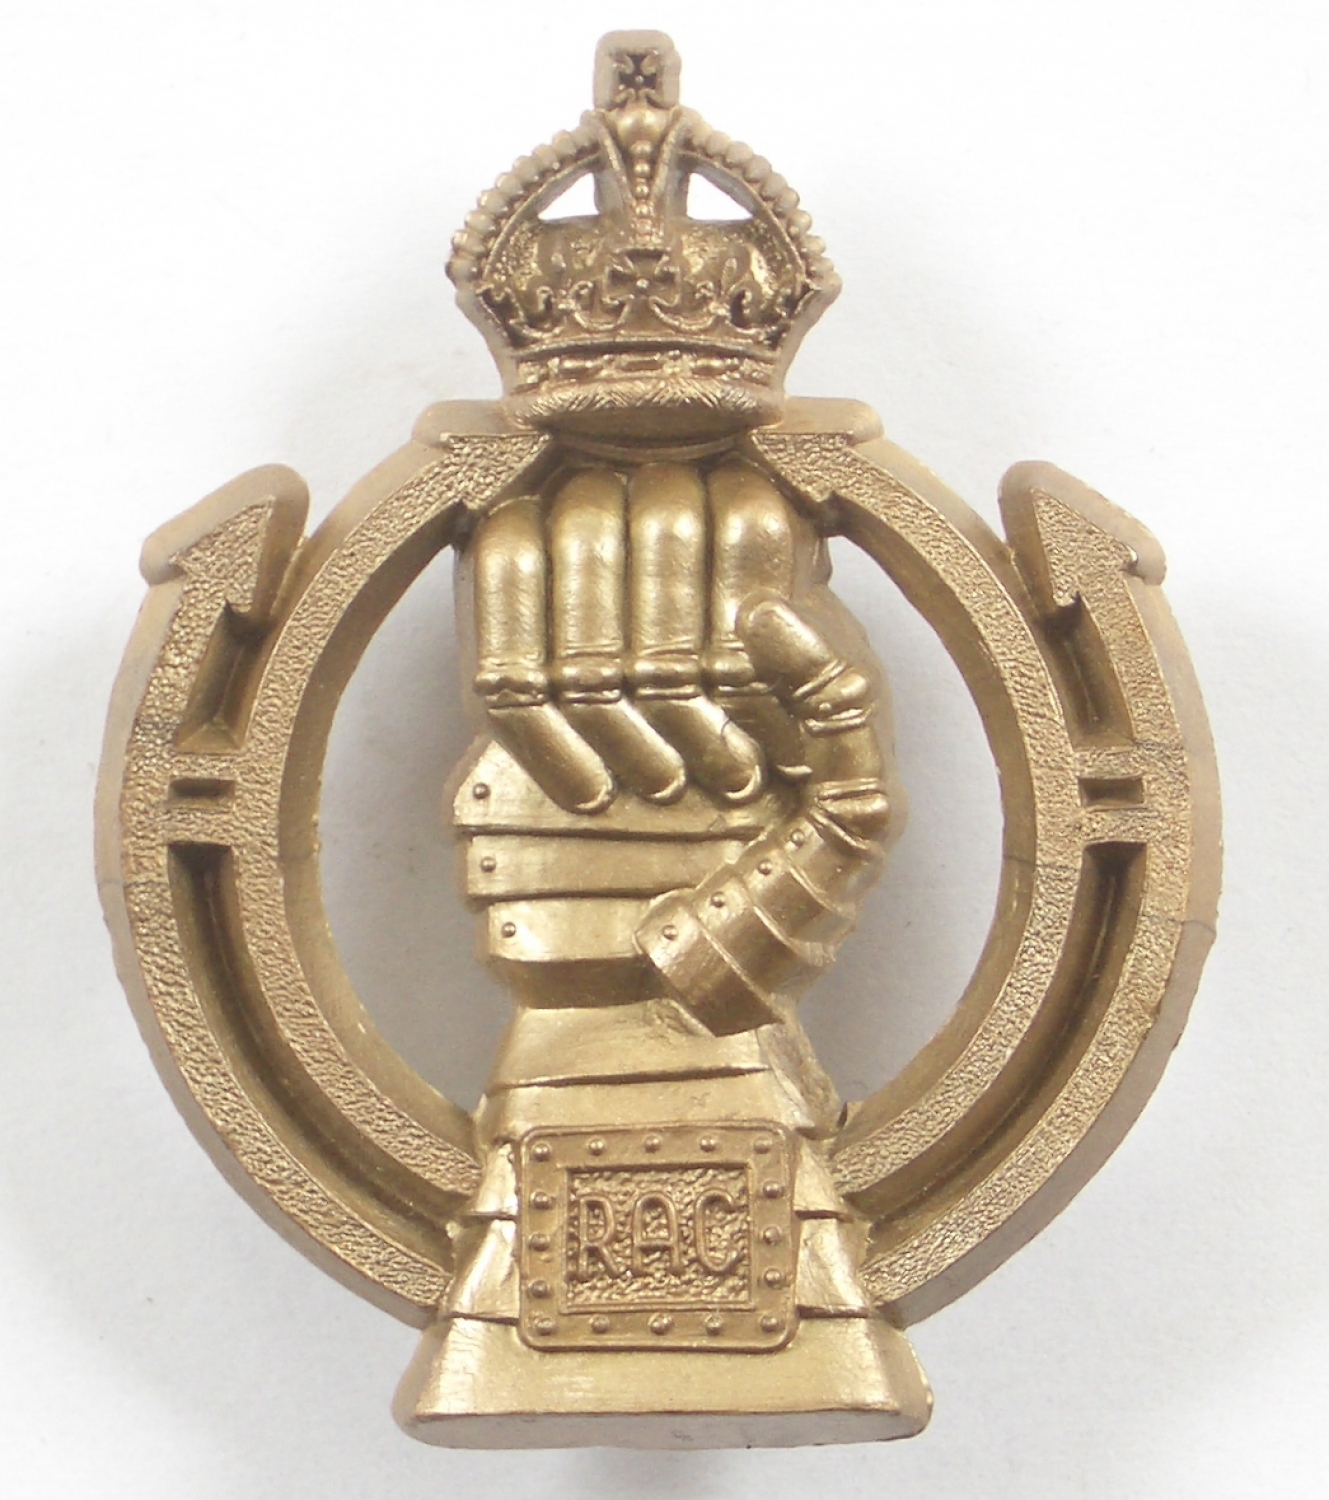 Royal Armoured Corps plastic beret badge